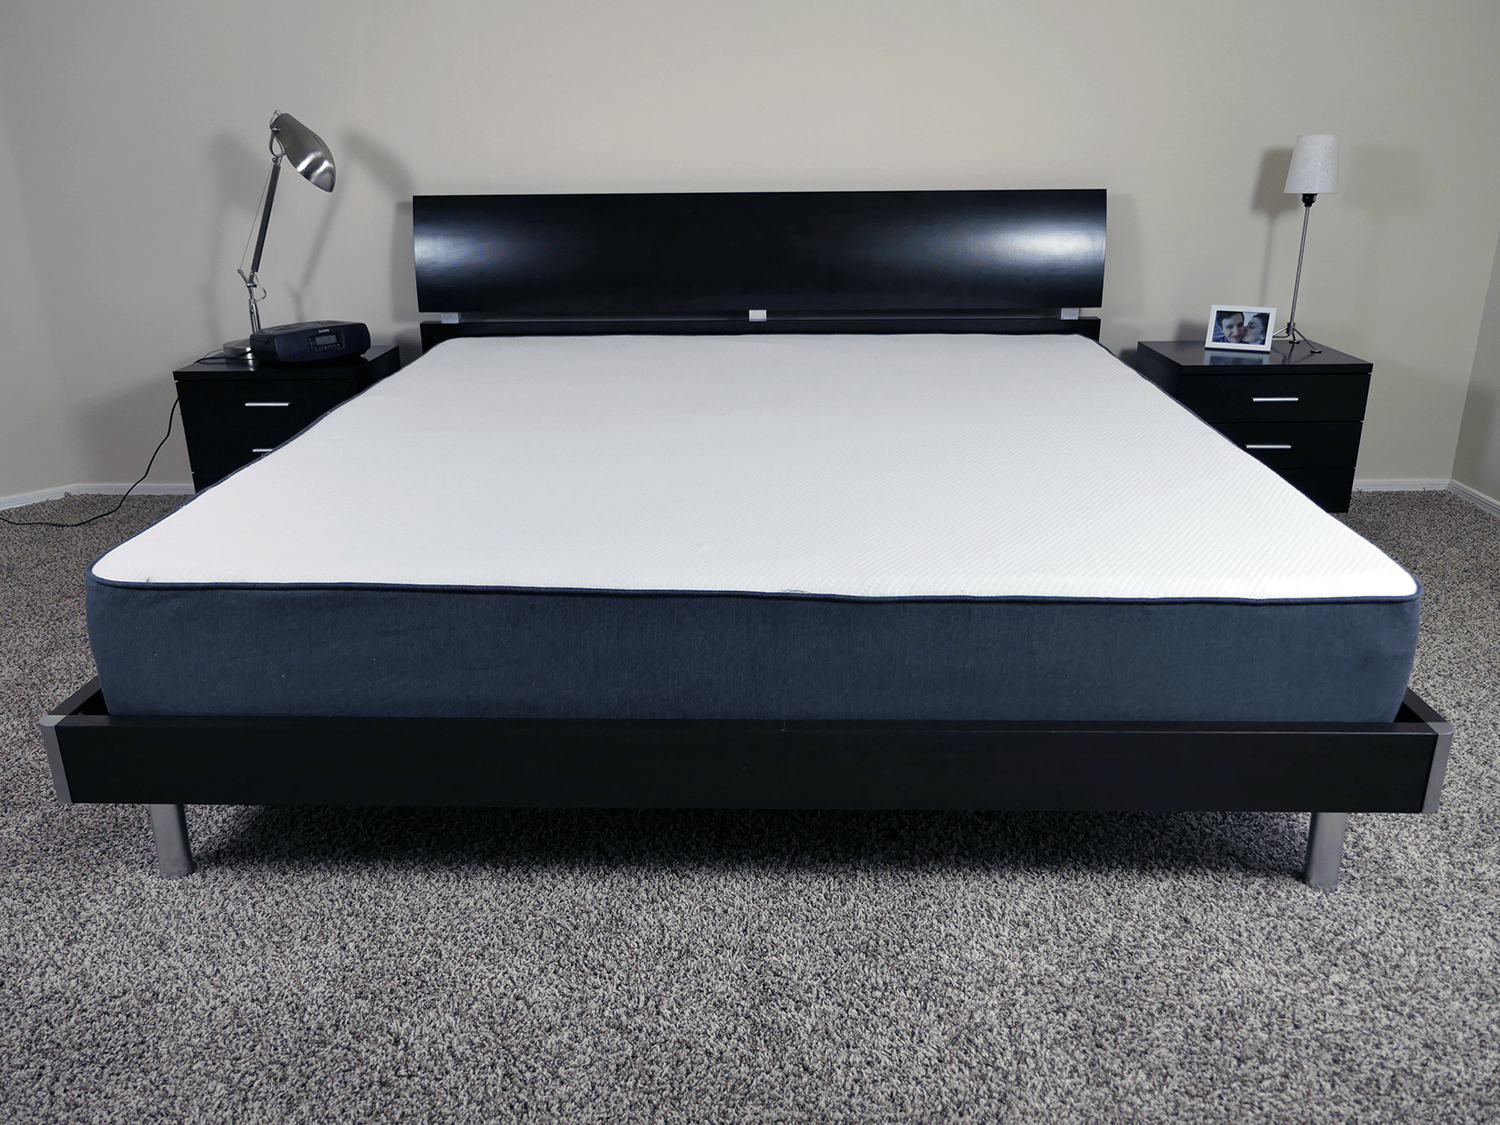 Brooklyn bedding vs casper mattress review sleepopolis for Brooklyn bedding vs leesa